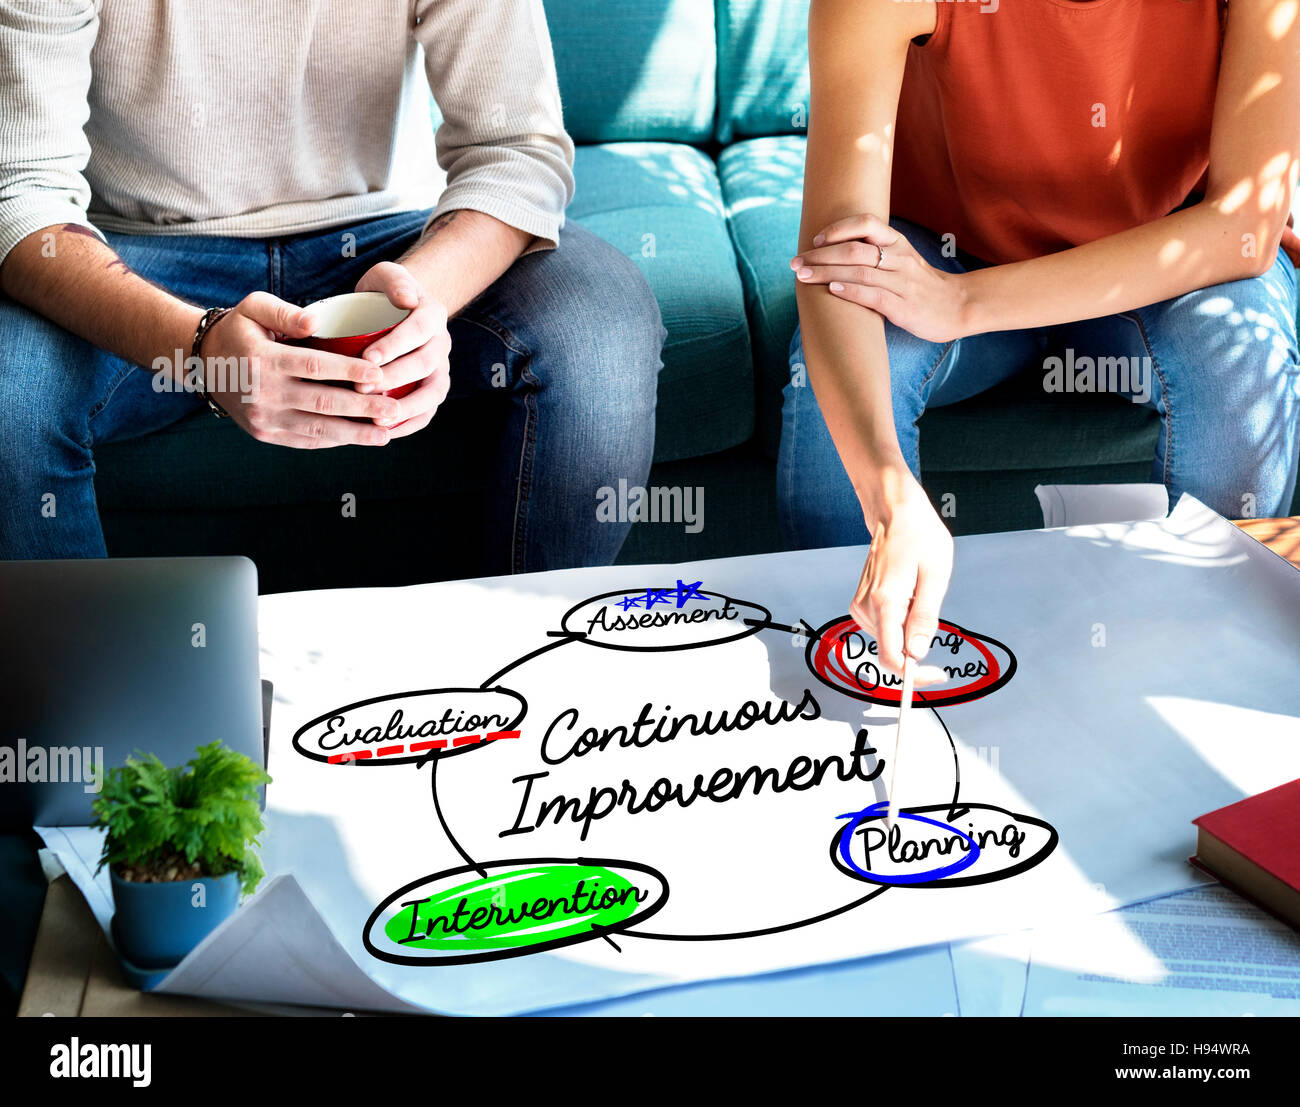 Continuous Improvement Workflow Process Action Plan Concept - Stock Image